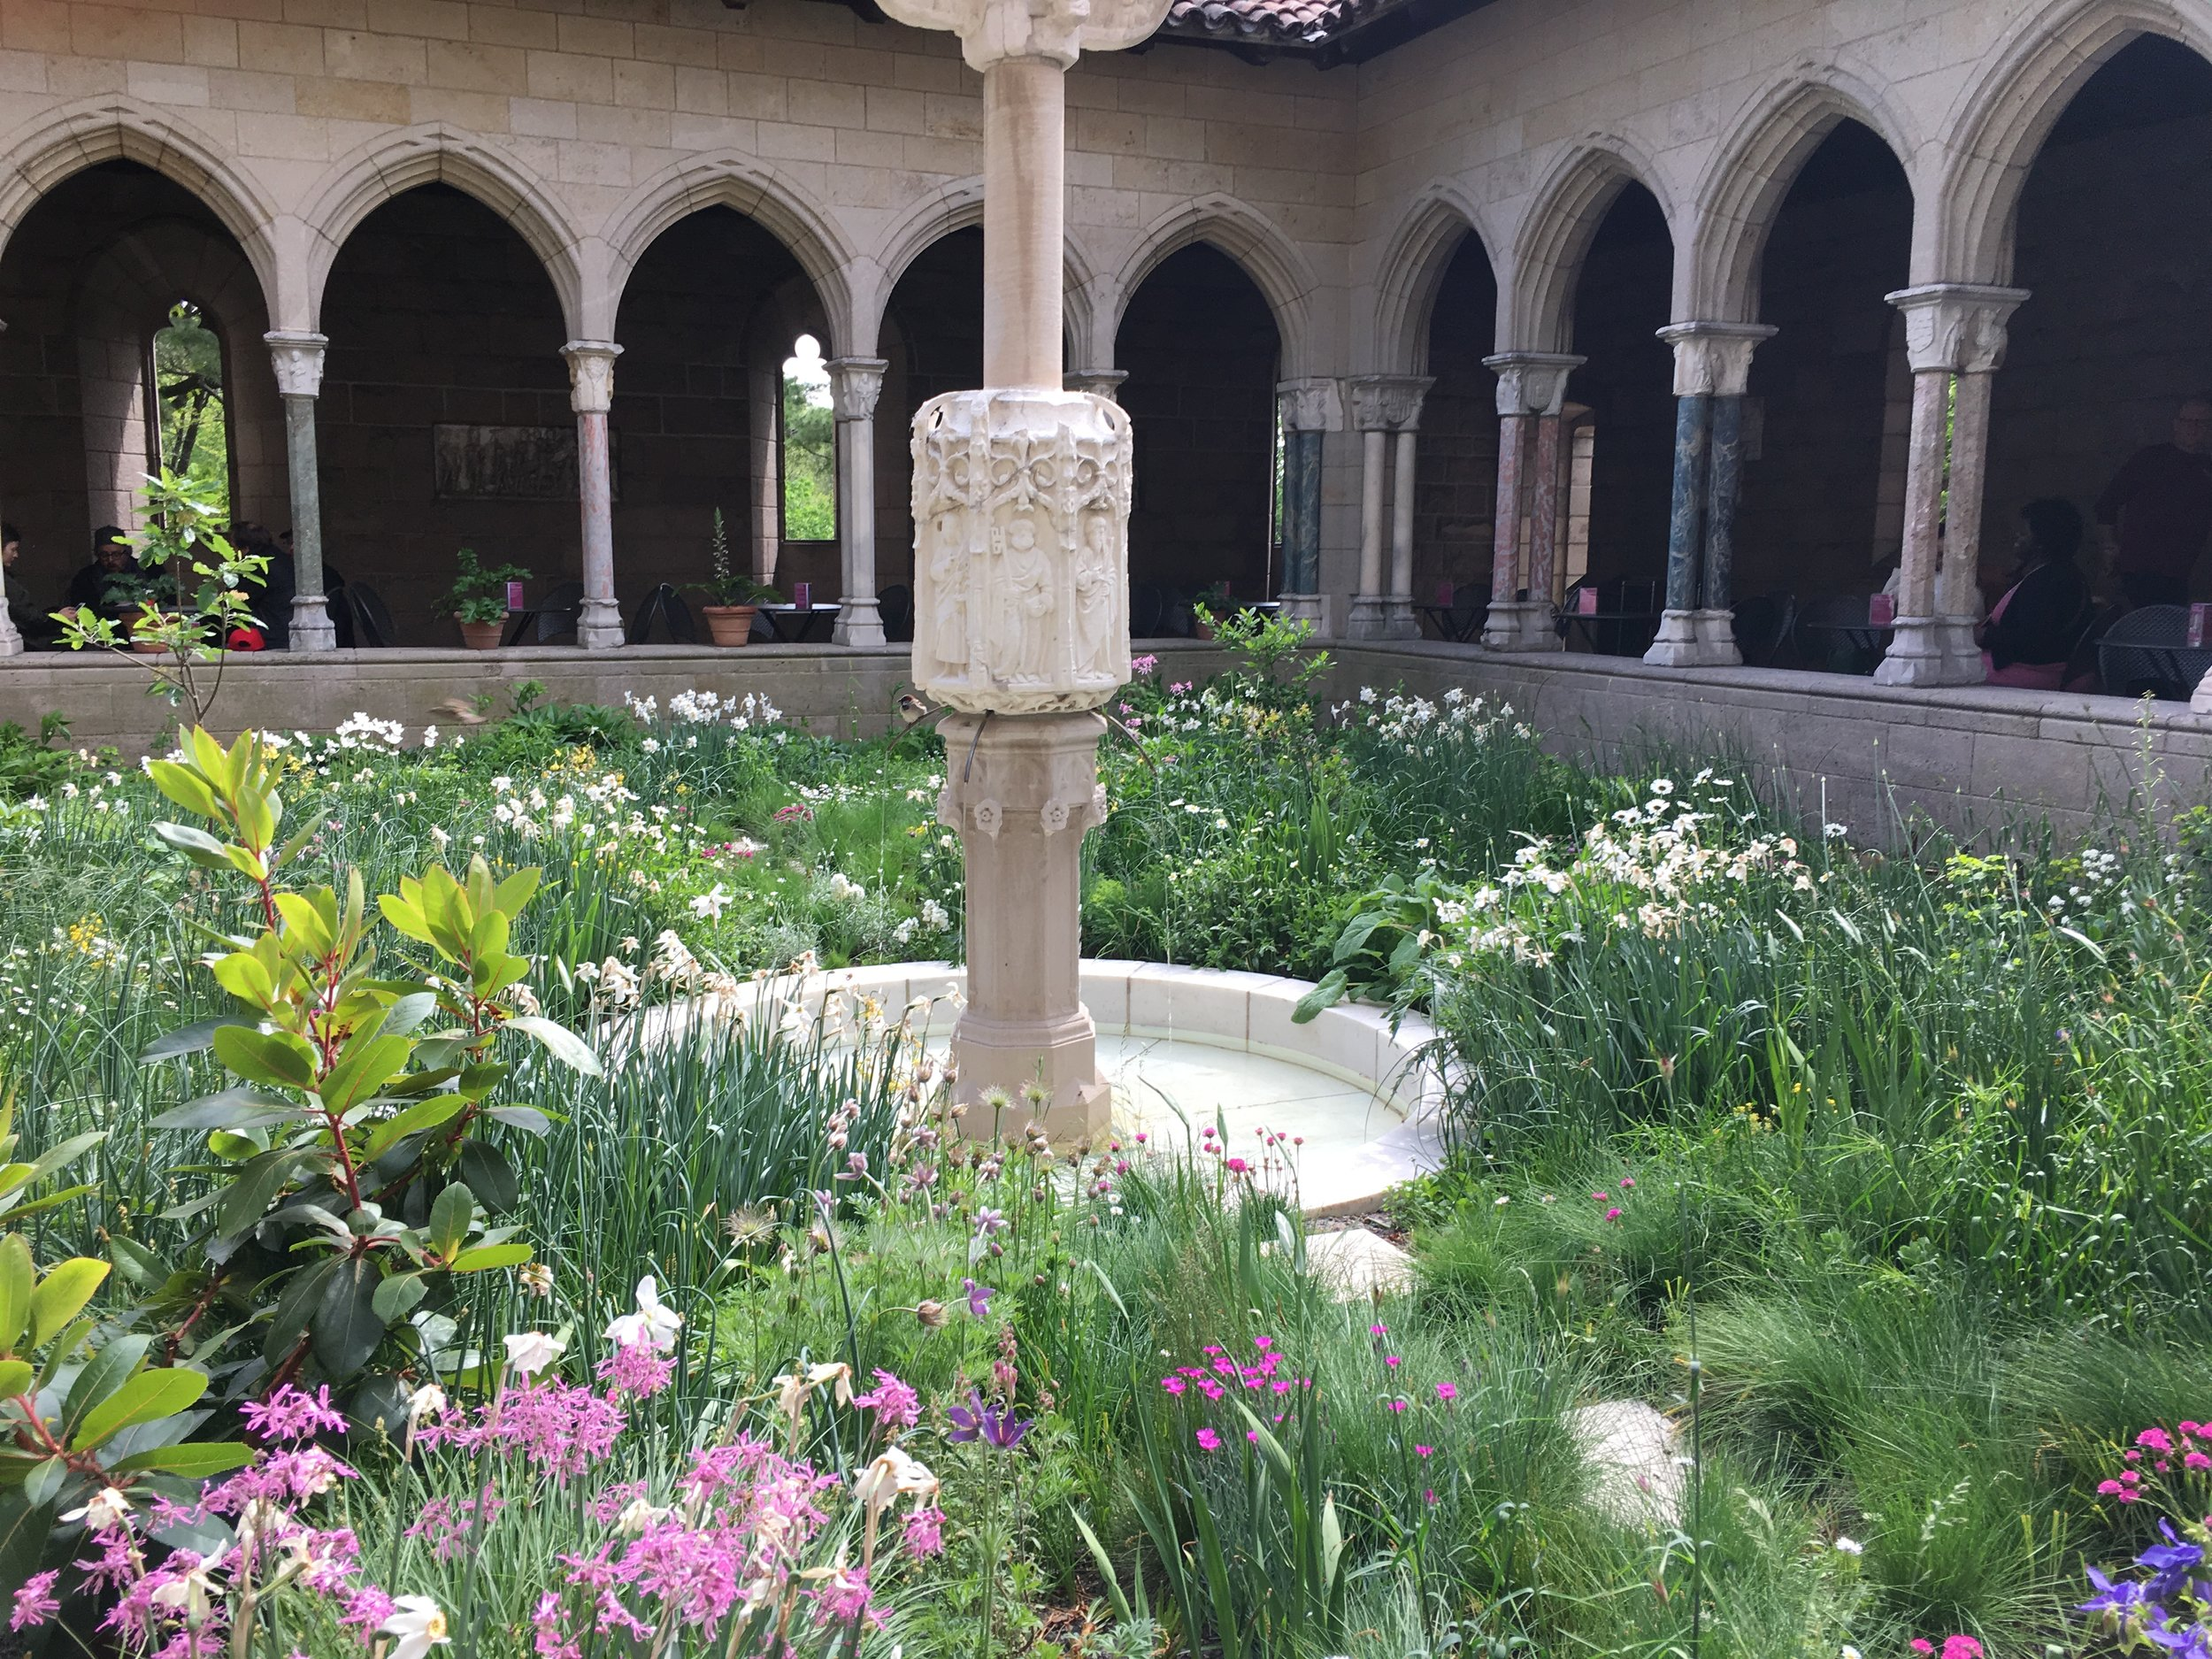 Gardens  - Specifically @ The Cloisters